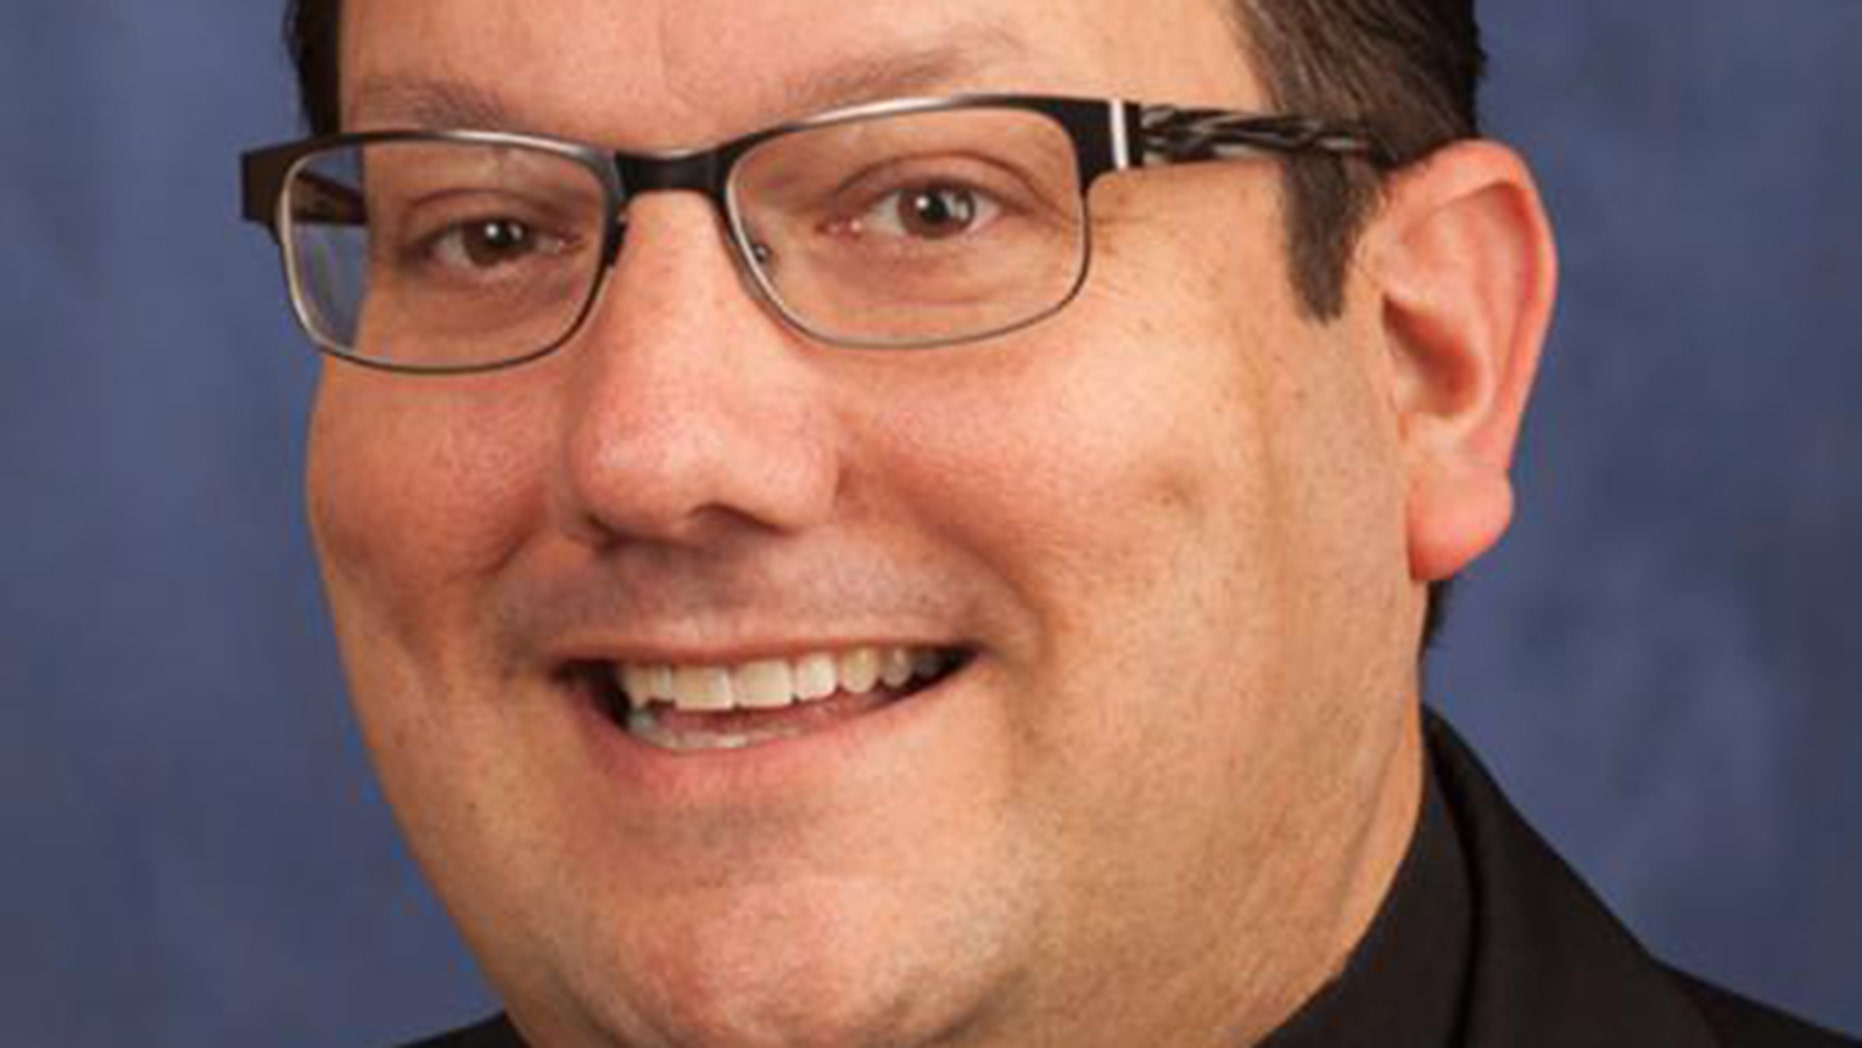 The Catholic Diocese of Columbus says Rev. James Csaszar was being investigated for 'questionable text and telephone communications with a minor.'